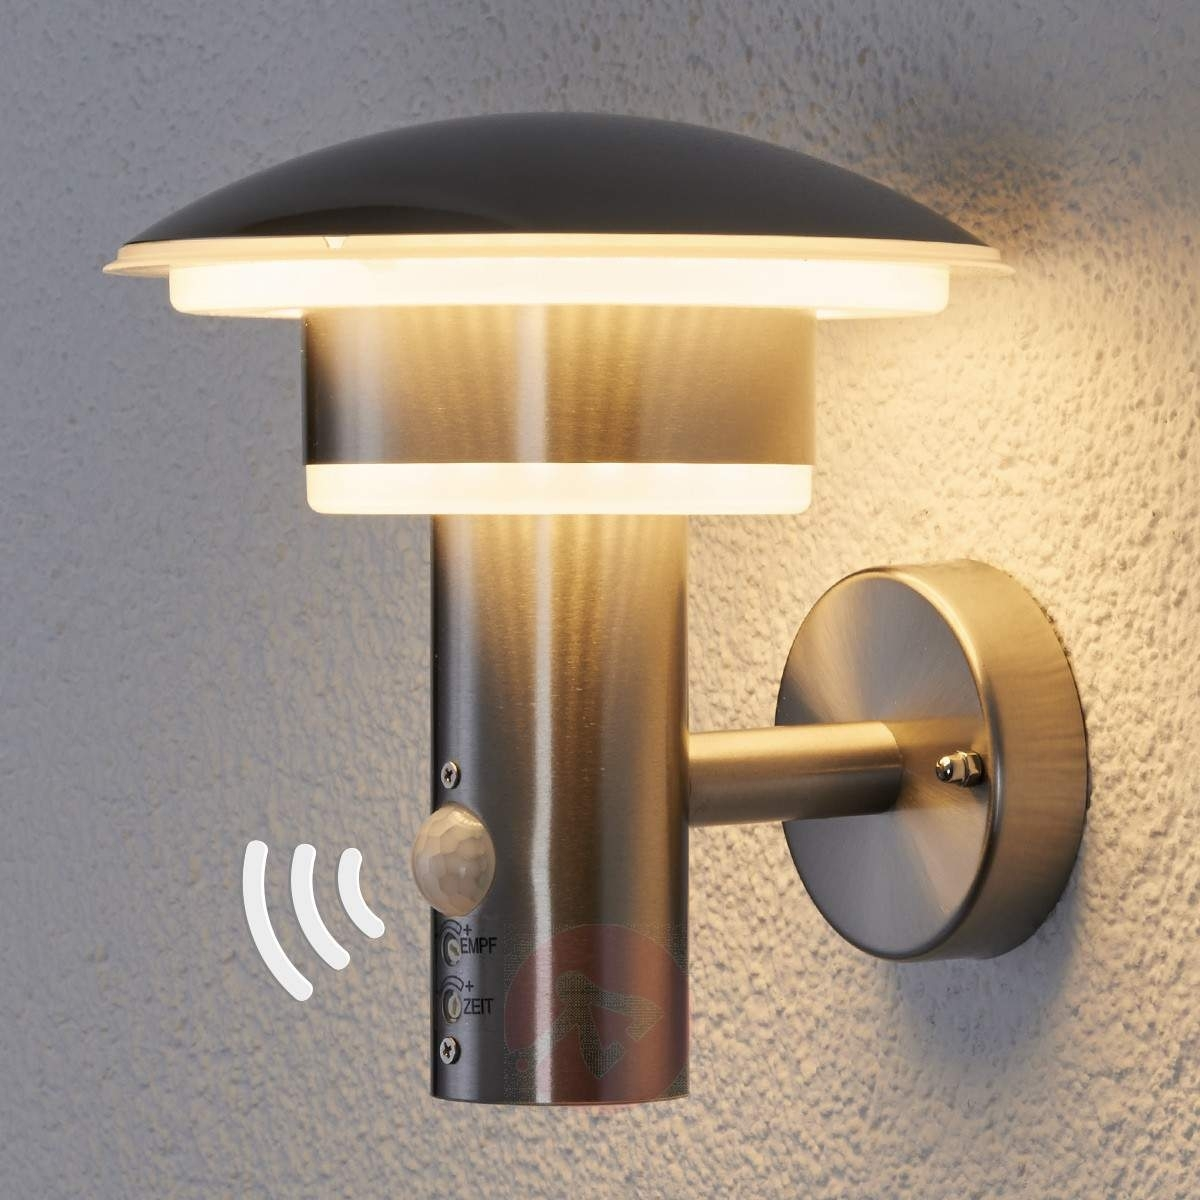 Inspiration about Pir Outdoor Wall Light Lillie With Leds | Lights.ie Throughout High Quality Outdoor Wall Lighting (#5 of 15)